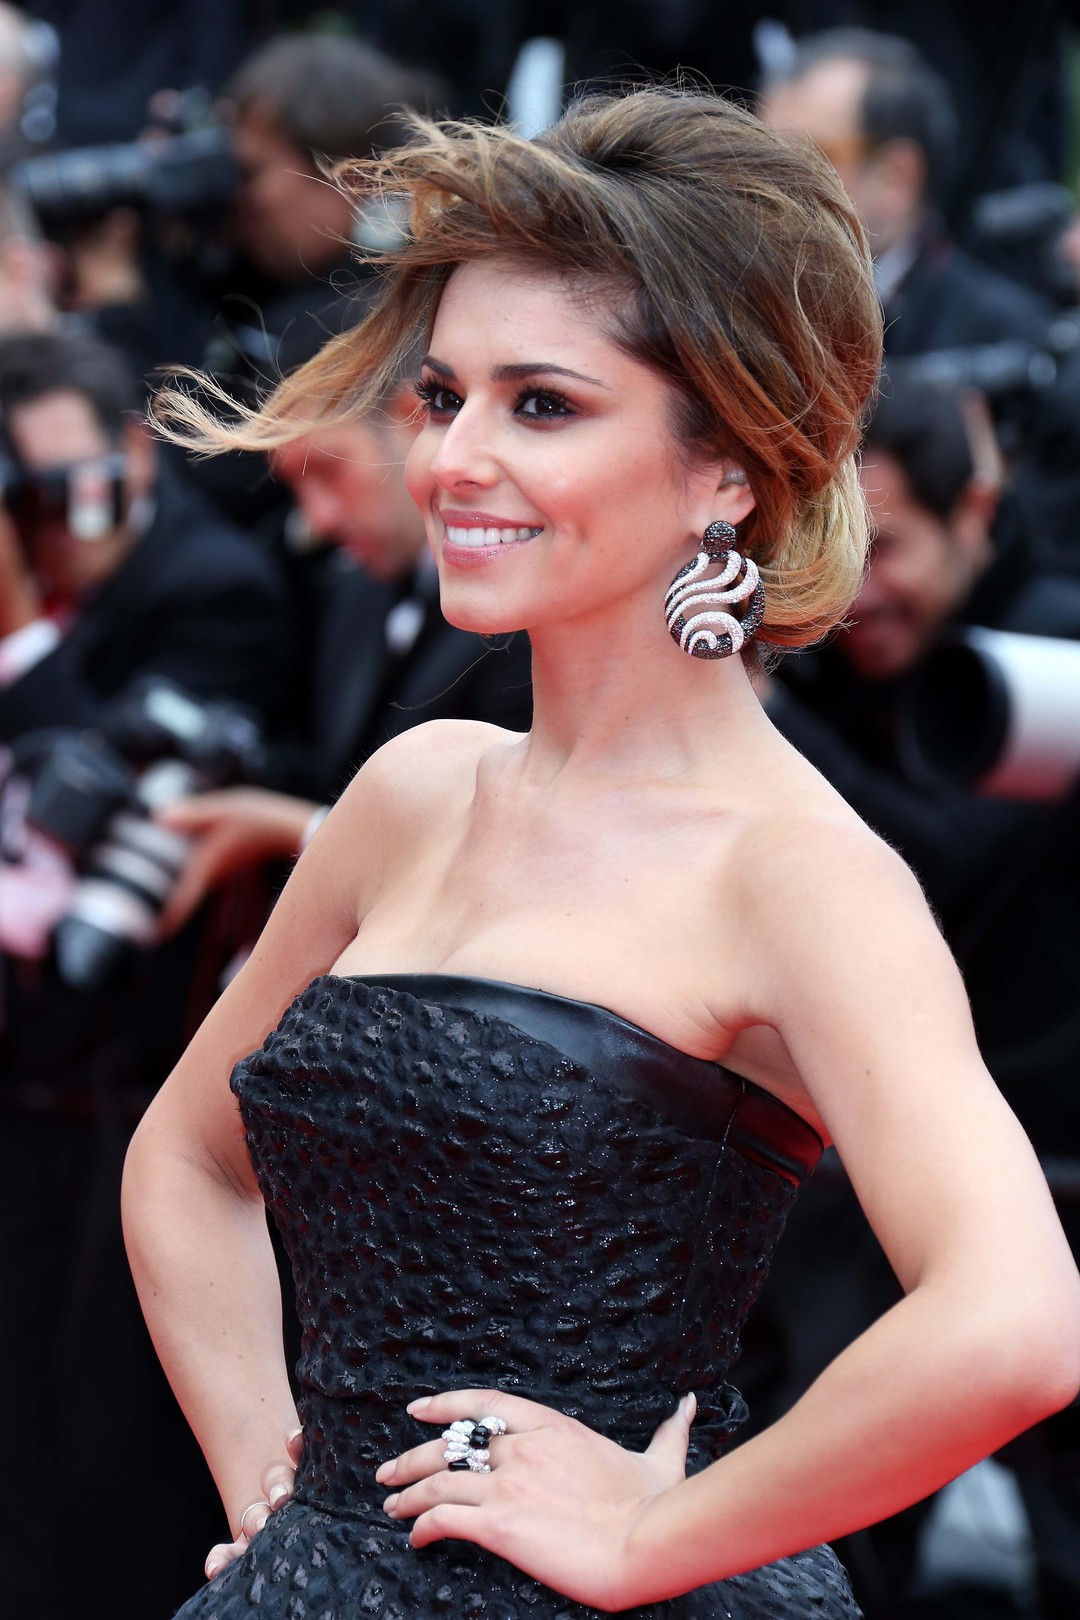 Cheryl Cole shows off a pair of monochrome de GRISOGONO earrings set with black and white diamonds and a diamond and a jet ring from the Gocce collection at the Cannes Film Festival 2014.